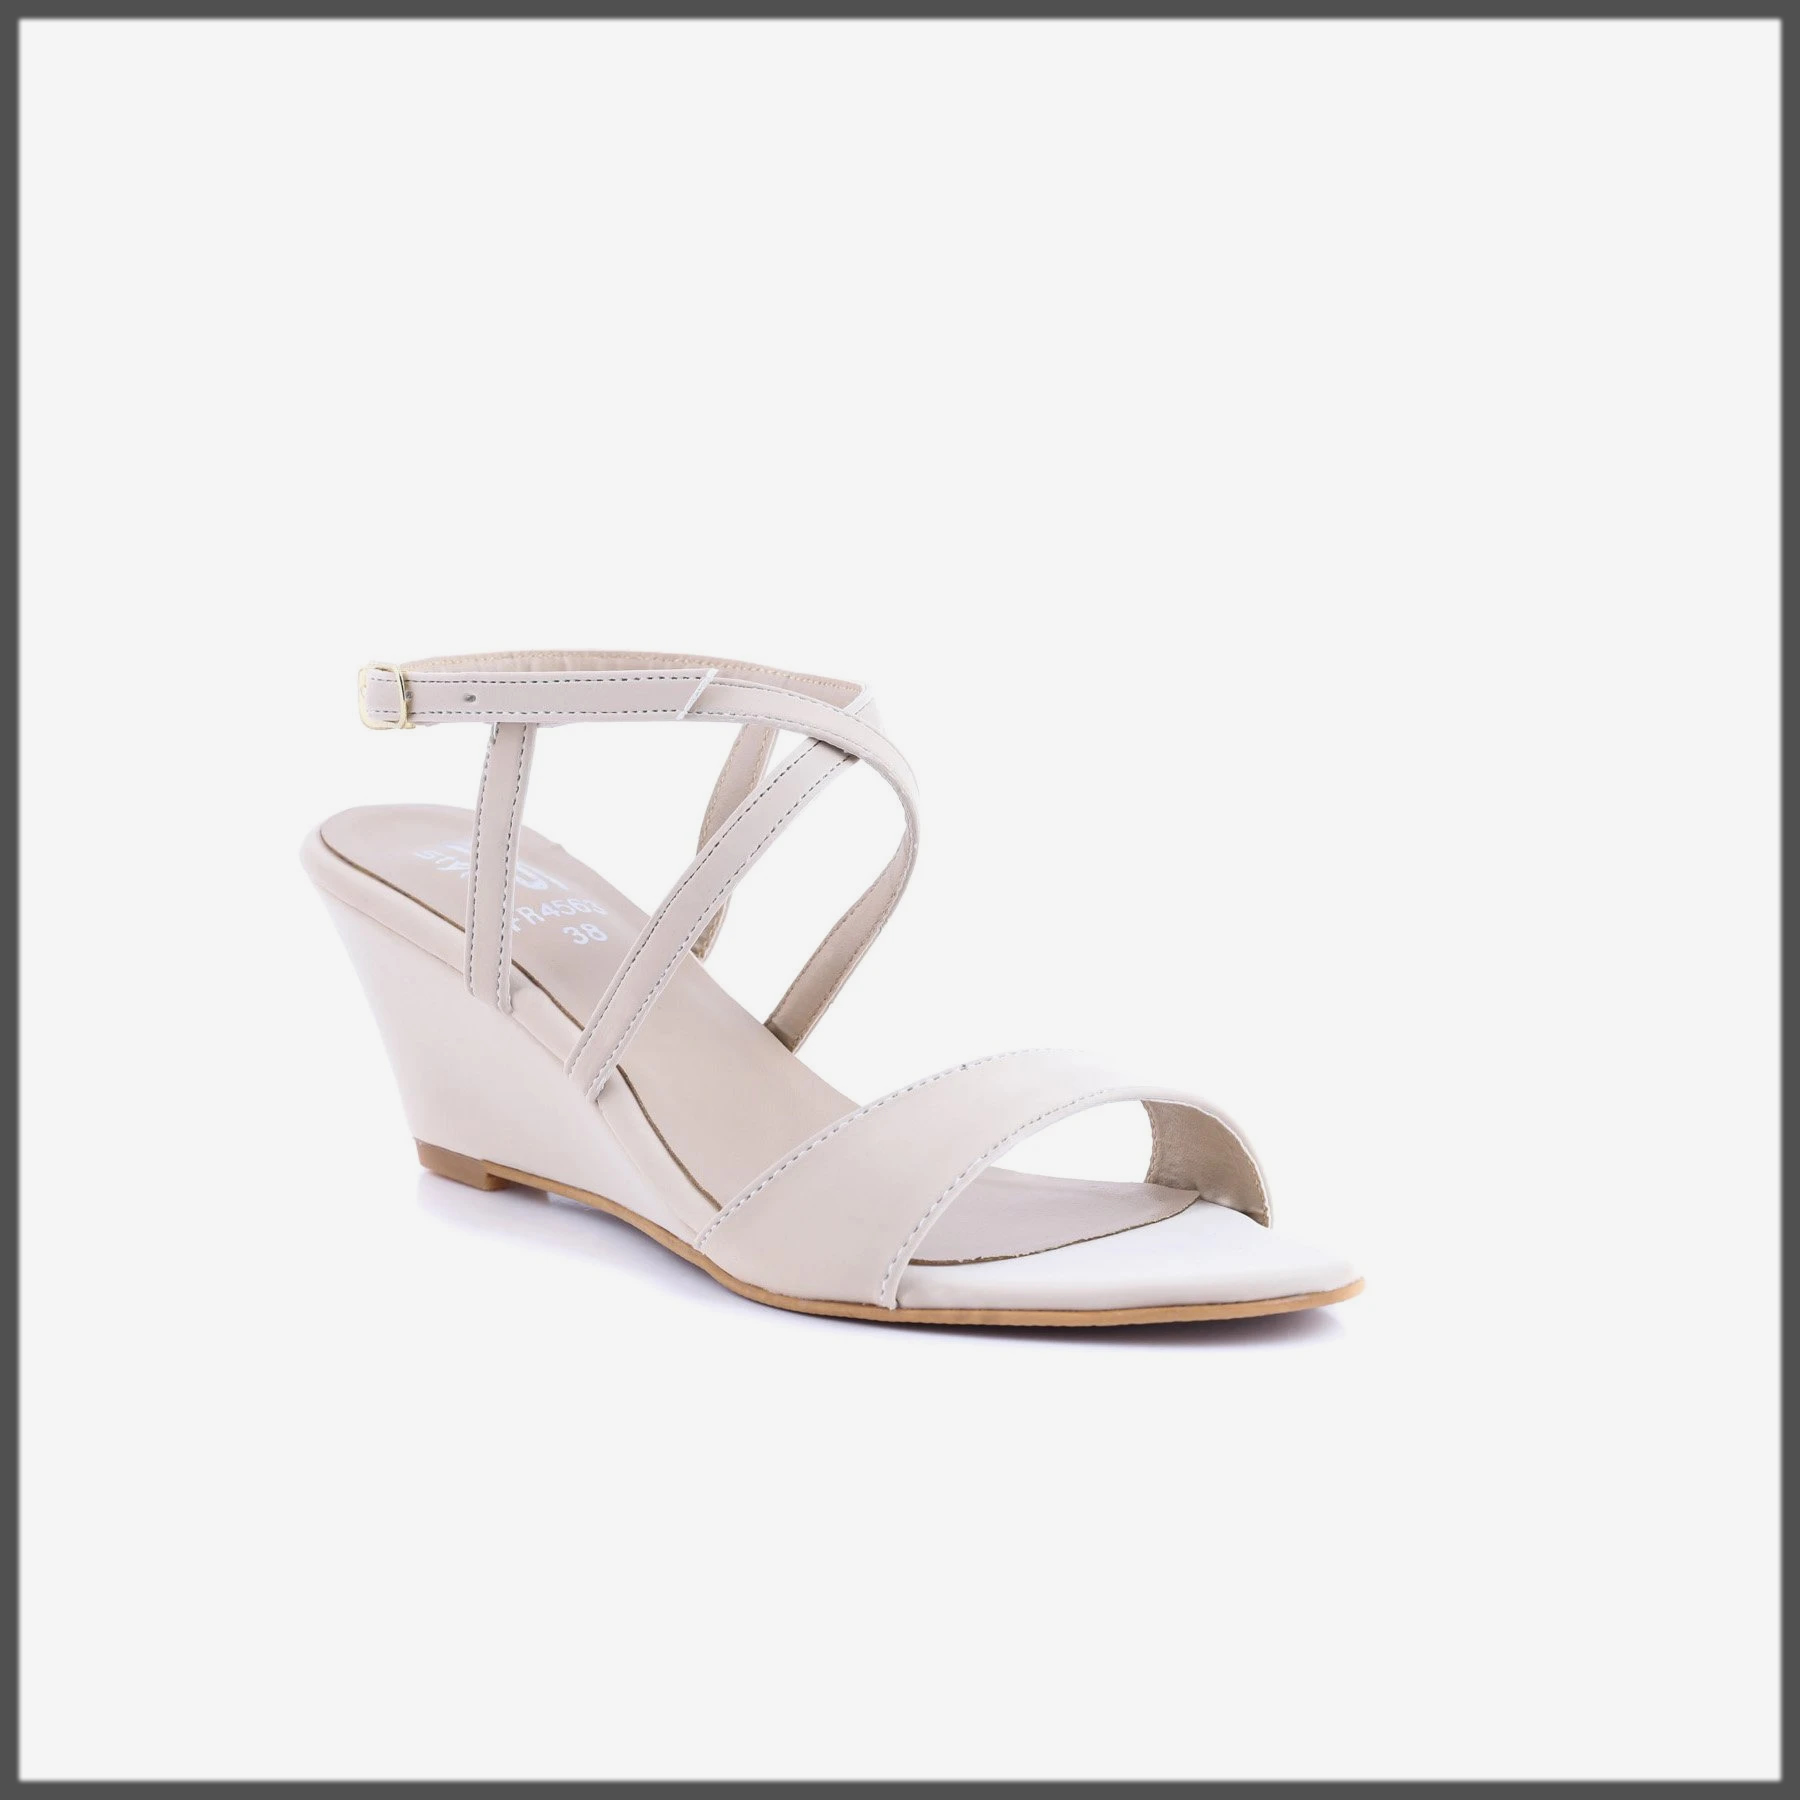 white Color Formal Sandal for women